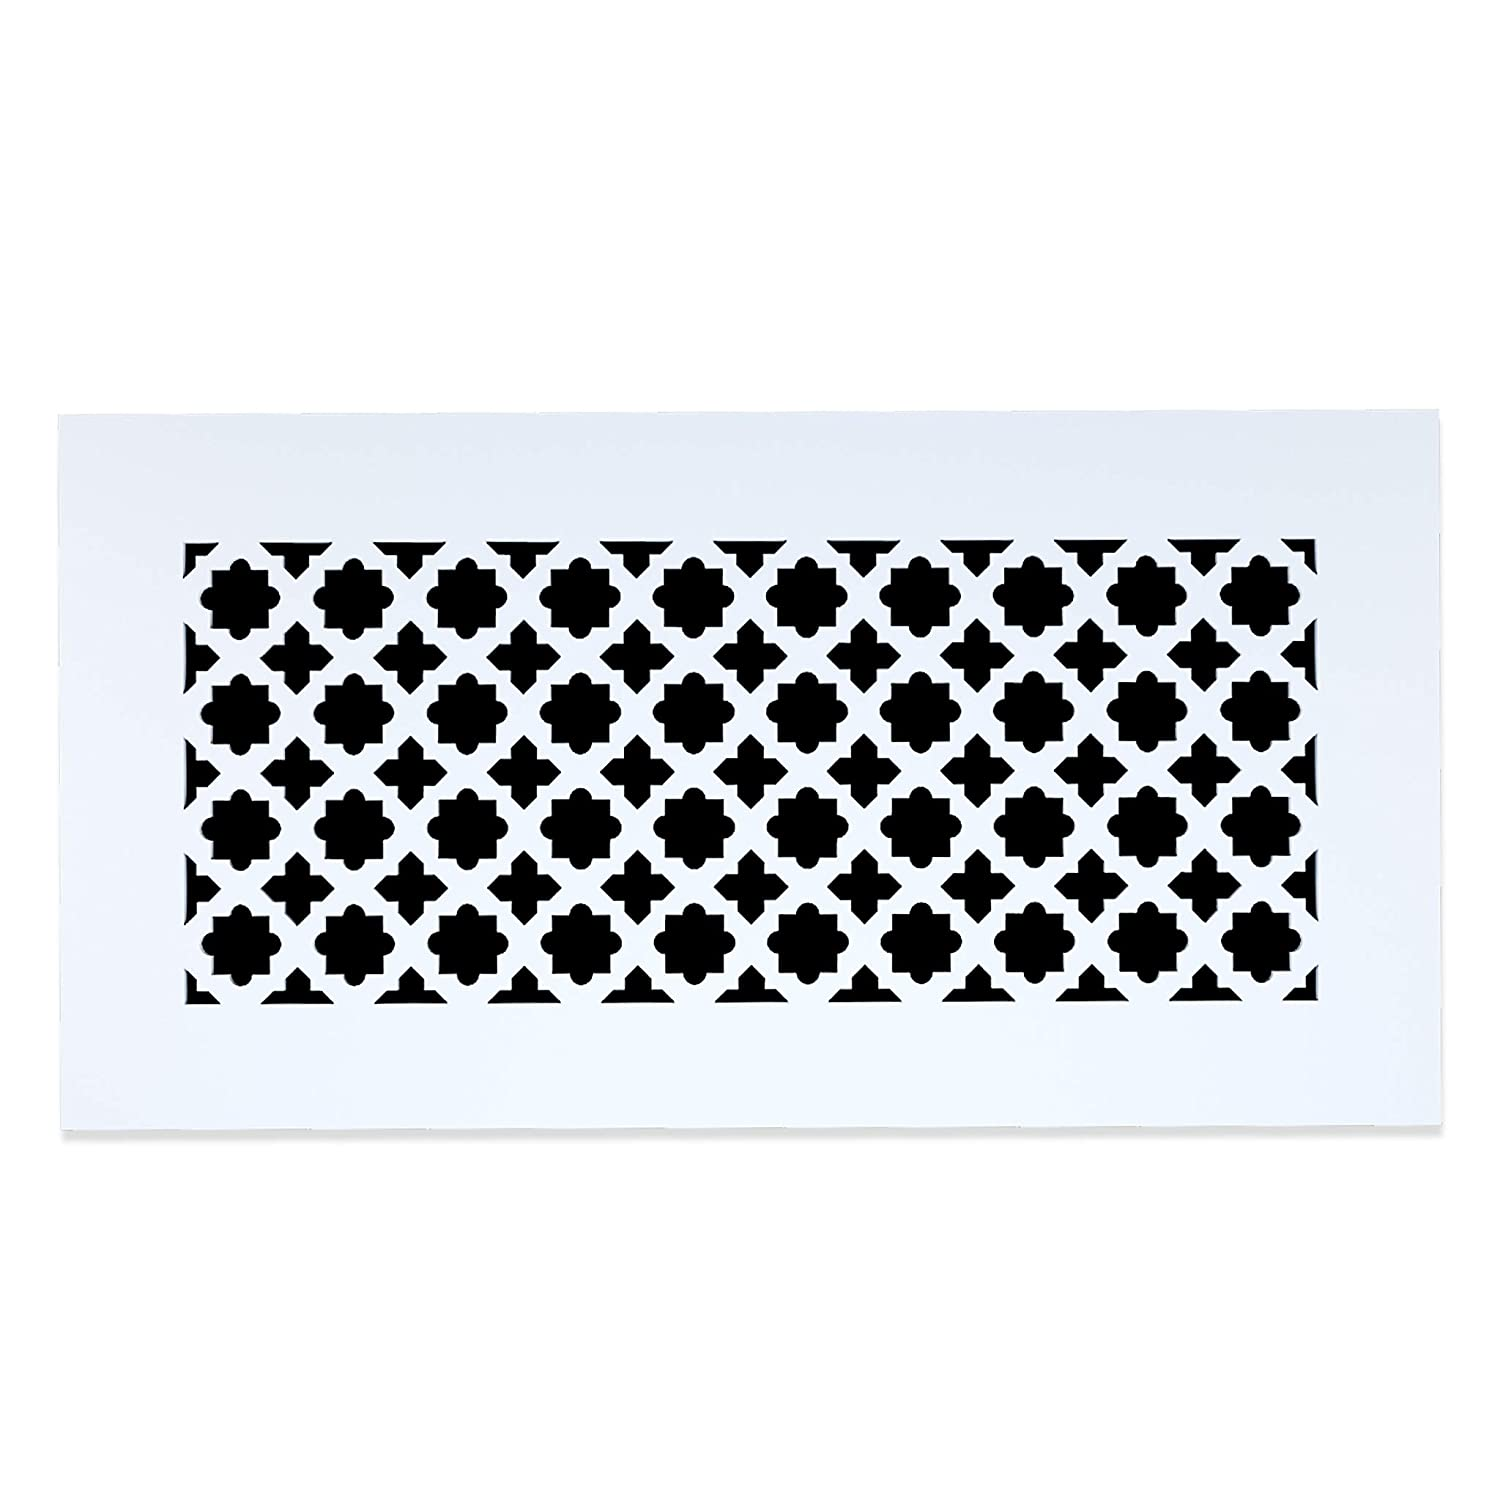 "Saba Air Vent Cover Grille - Acrylic Plexiglass 6"" x 14"" Duct Opening (8.5"" x 16.5"" Overall) White Finish Decorative Register Covers for Walls and Ceilings NOT for Floor USE, Venetian"